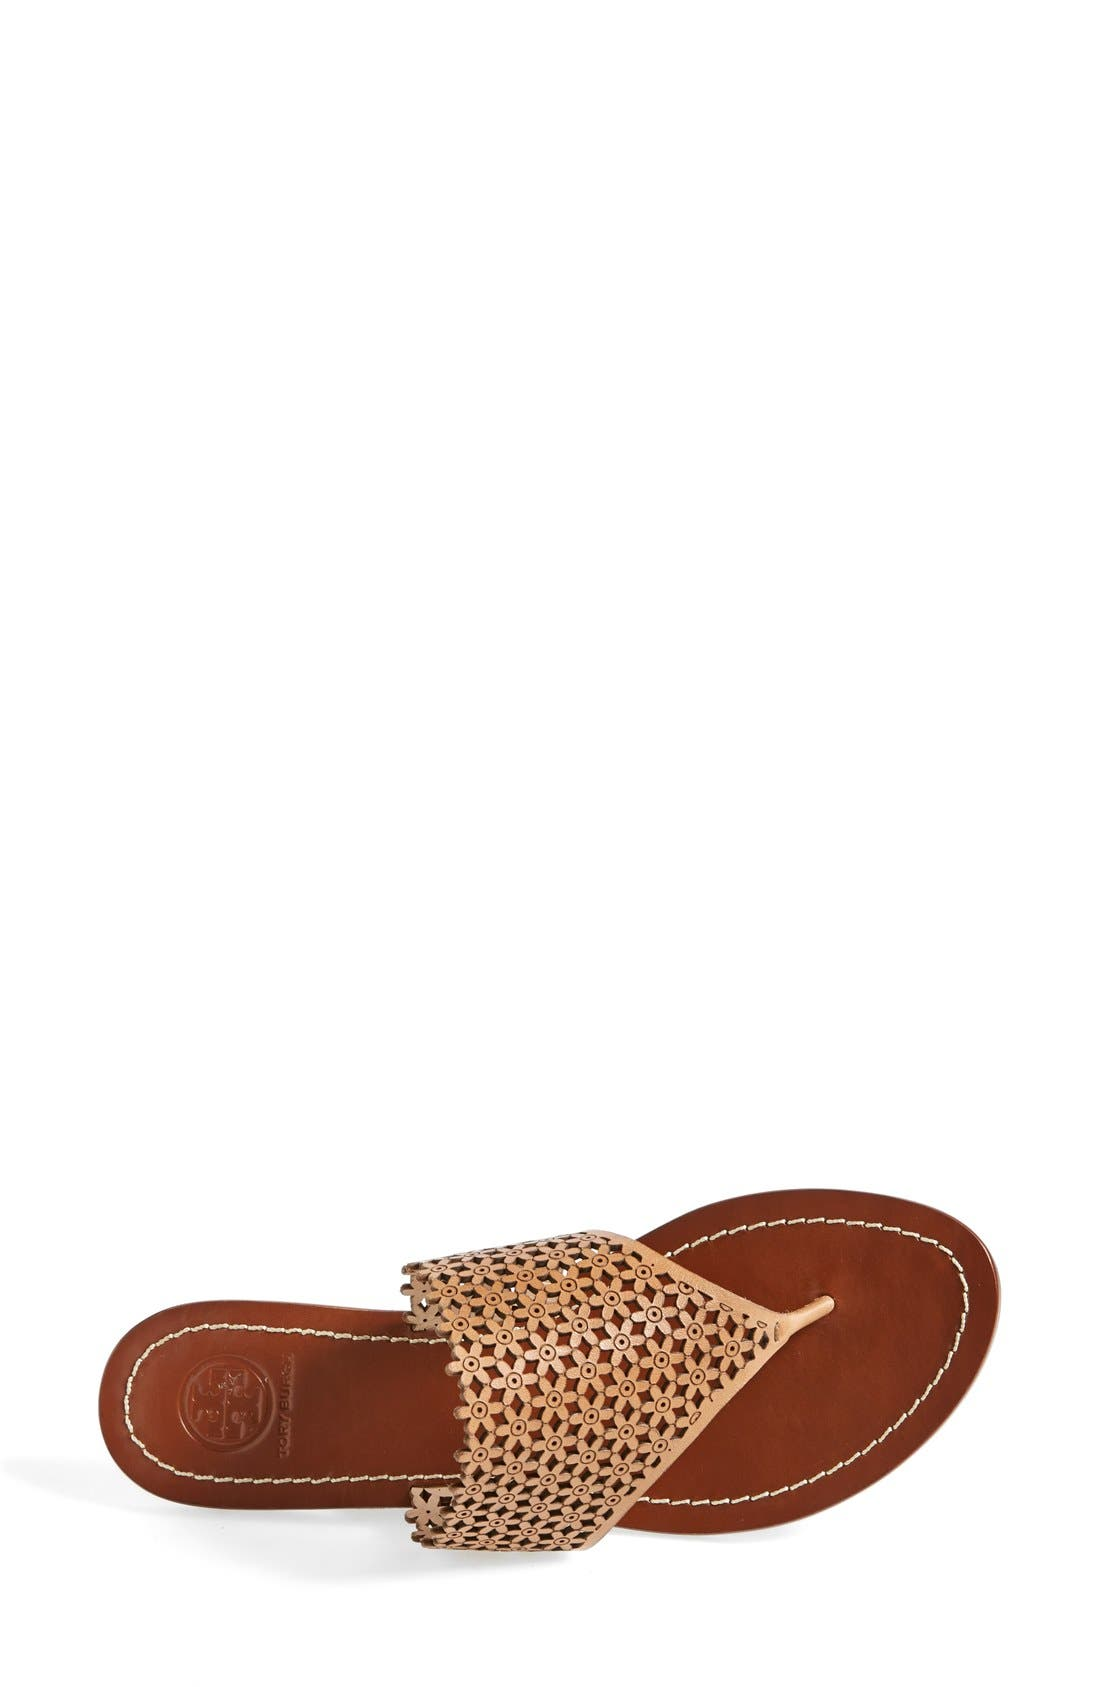 Alternate Image 2  - Tory Burch 'Daisy' Perforated Sandal (Women)